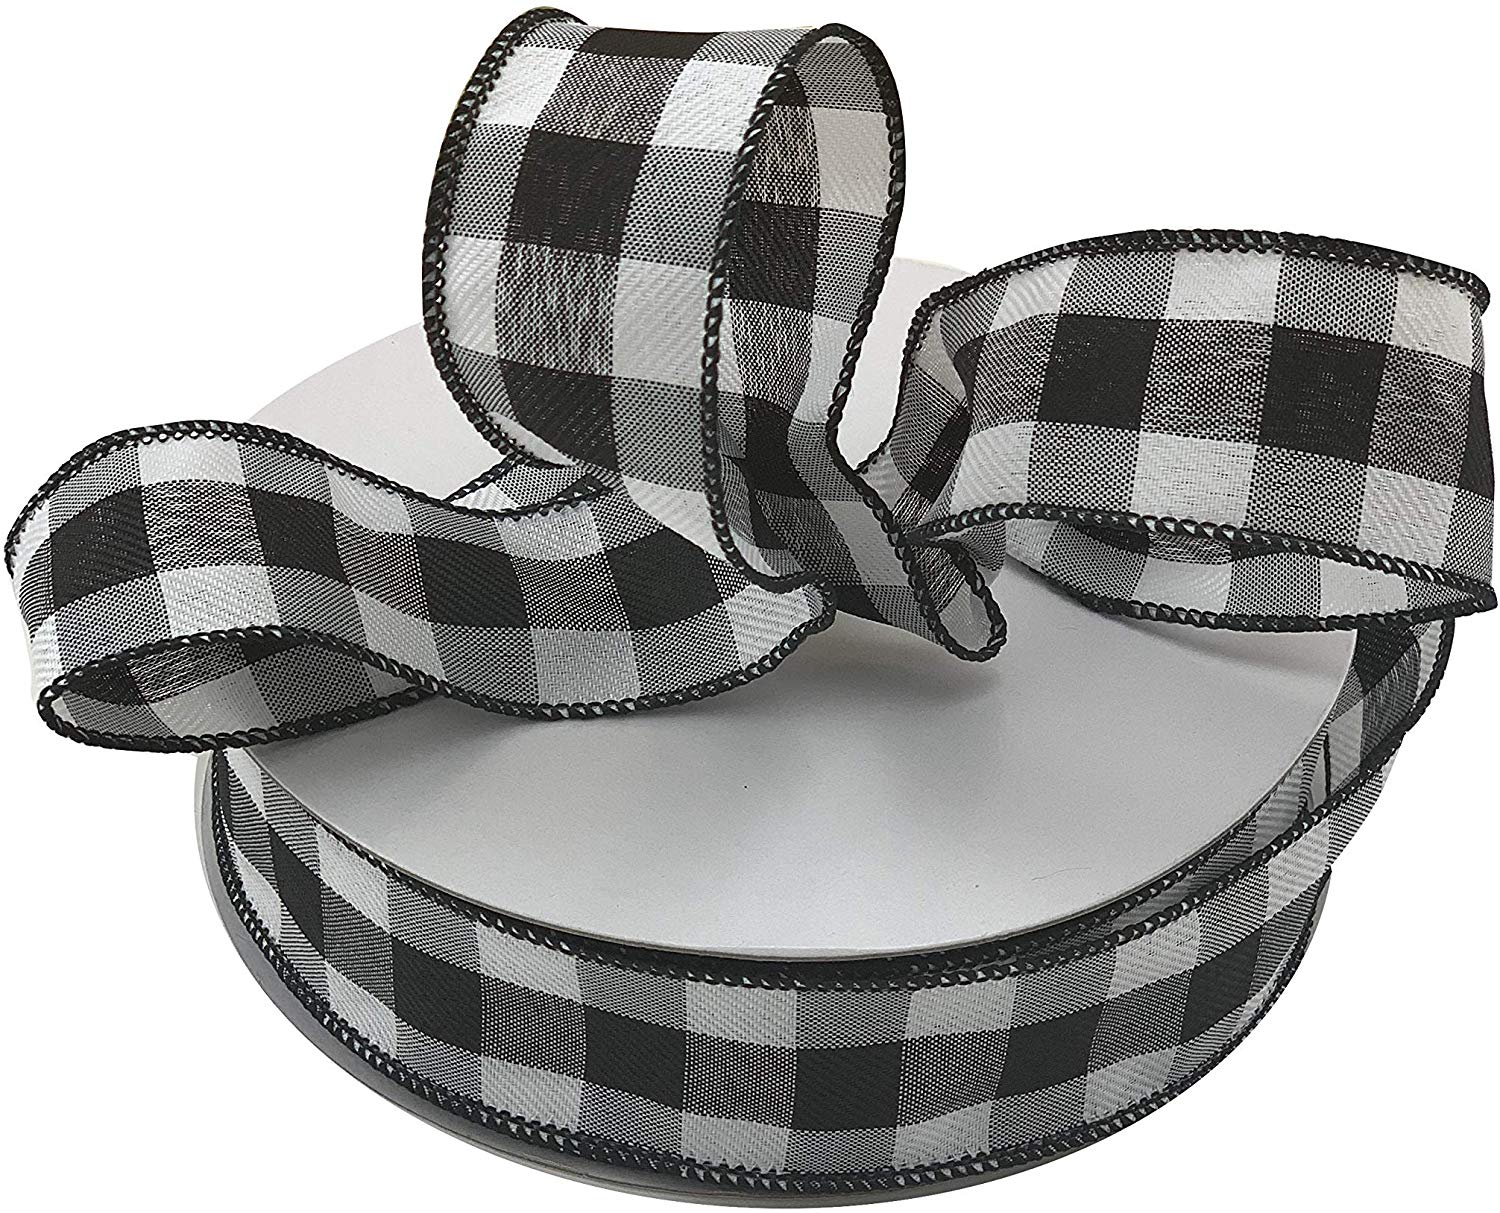 Black White Buffalo Plaid Ribbon 1 1 2 X 50 Yards Wired Edge Christmas Ribbon Wreath Farmhouse Decor Garland Presents Gift Basket Wrapping Ribbons For Crafts Walmart Com Walmart Com